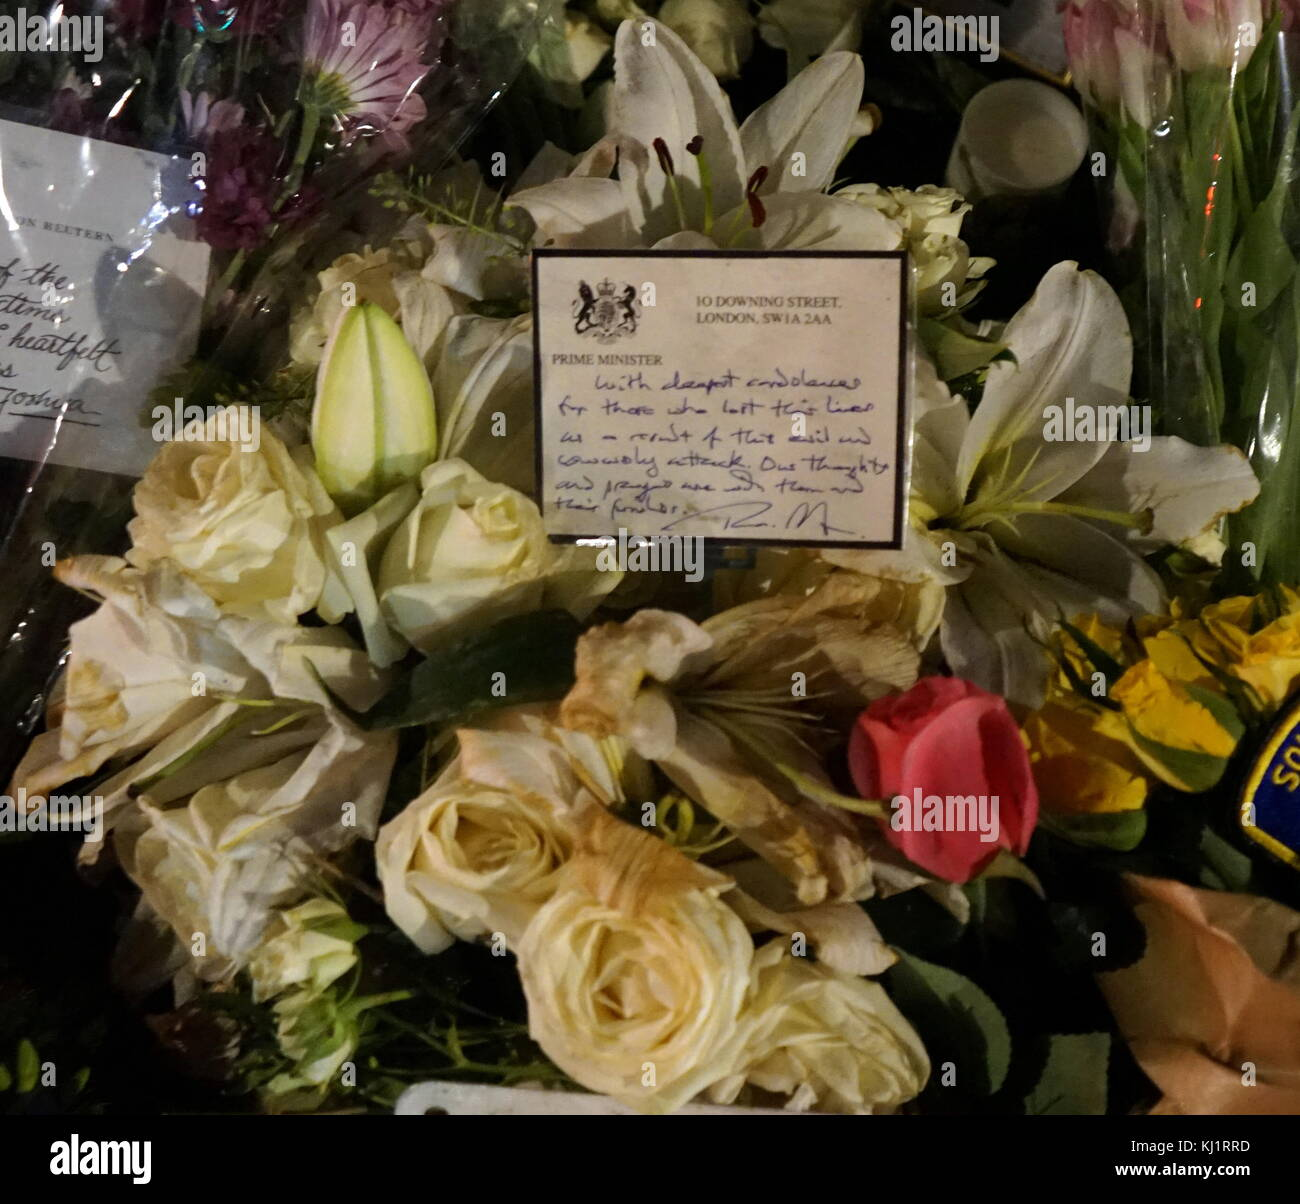 Flowers and tribute from British Prime Minister Theresa May, for the murdered Police officer, PC Keith Palmer, at Stock Photo